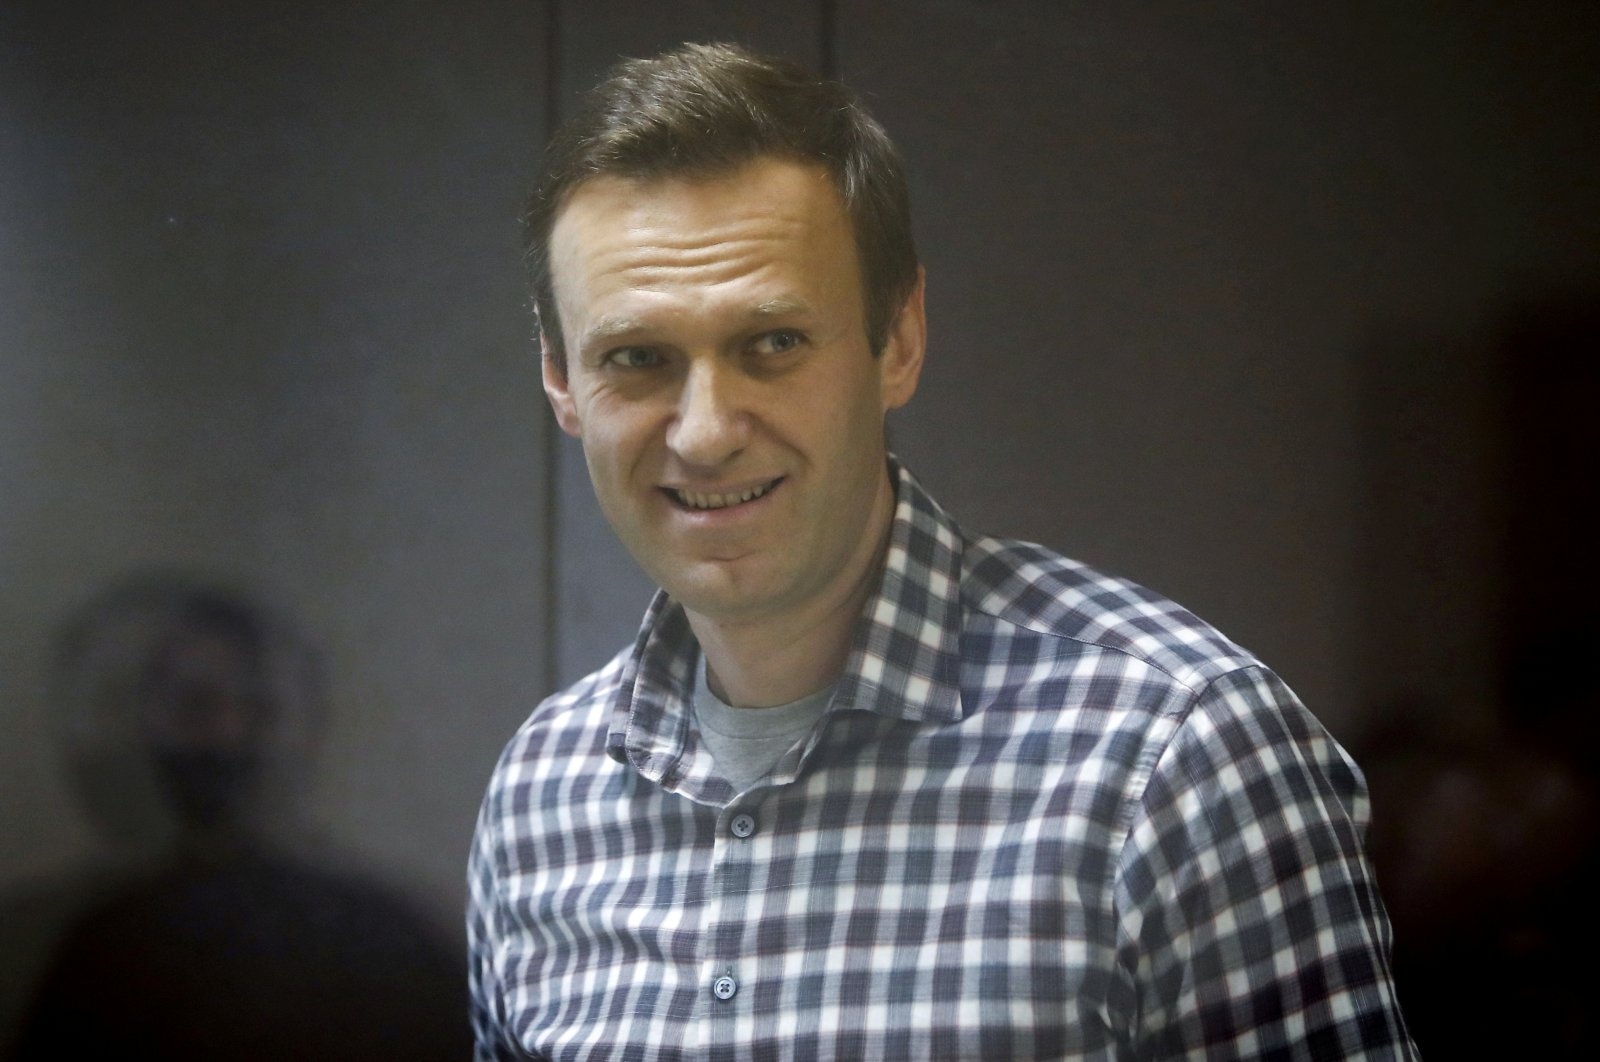 Russian opposition politician Alexei Navalny attends a court hearing in Moscow, Russia Feb. 20, 2021. (Reuters Photo)